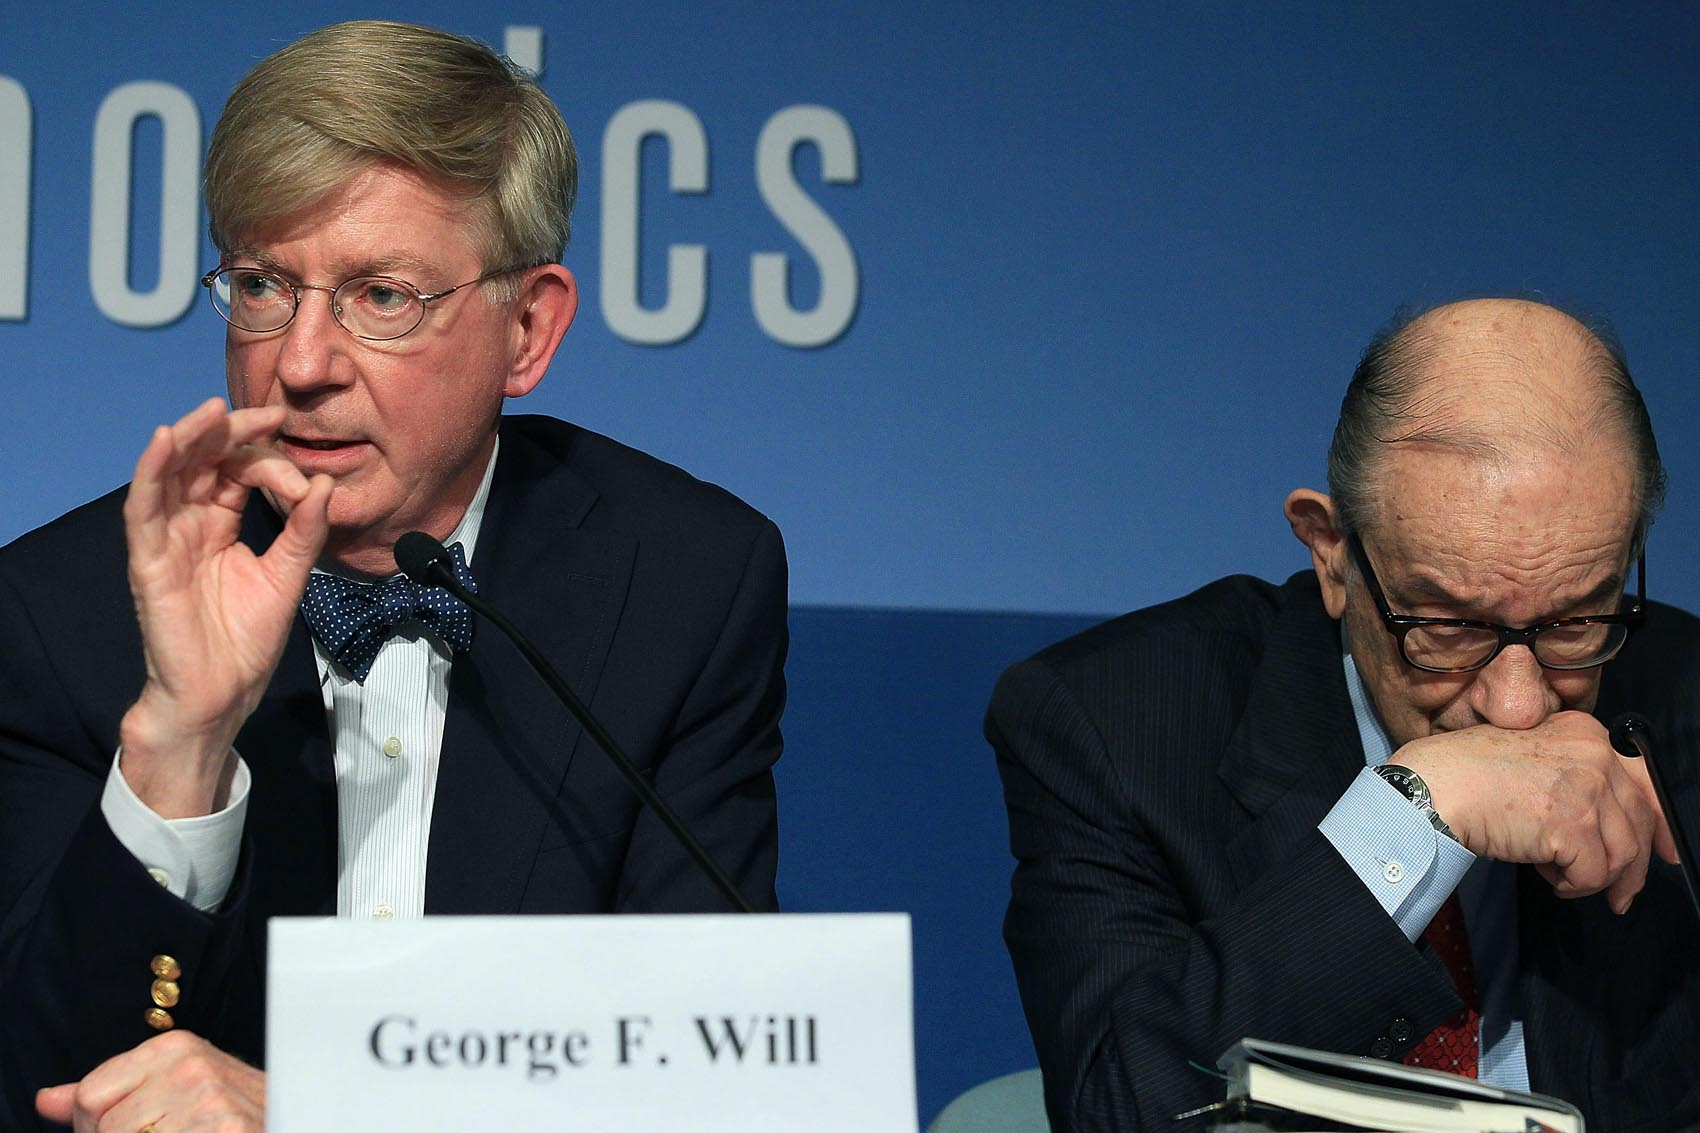 Former Federal Reserve Chairman Alan Greenspan (right) and columnist George Will participate in a discussion about the late U.S. Senator Daniel Patrick Moynihan, at the Peterson Institute for International Economics on Oct. 27, 2010. (Mark Wilson/Getty Images)